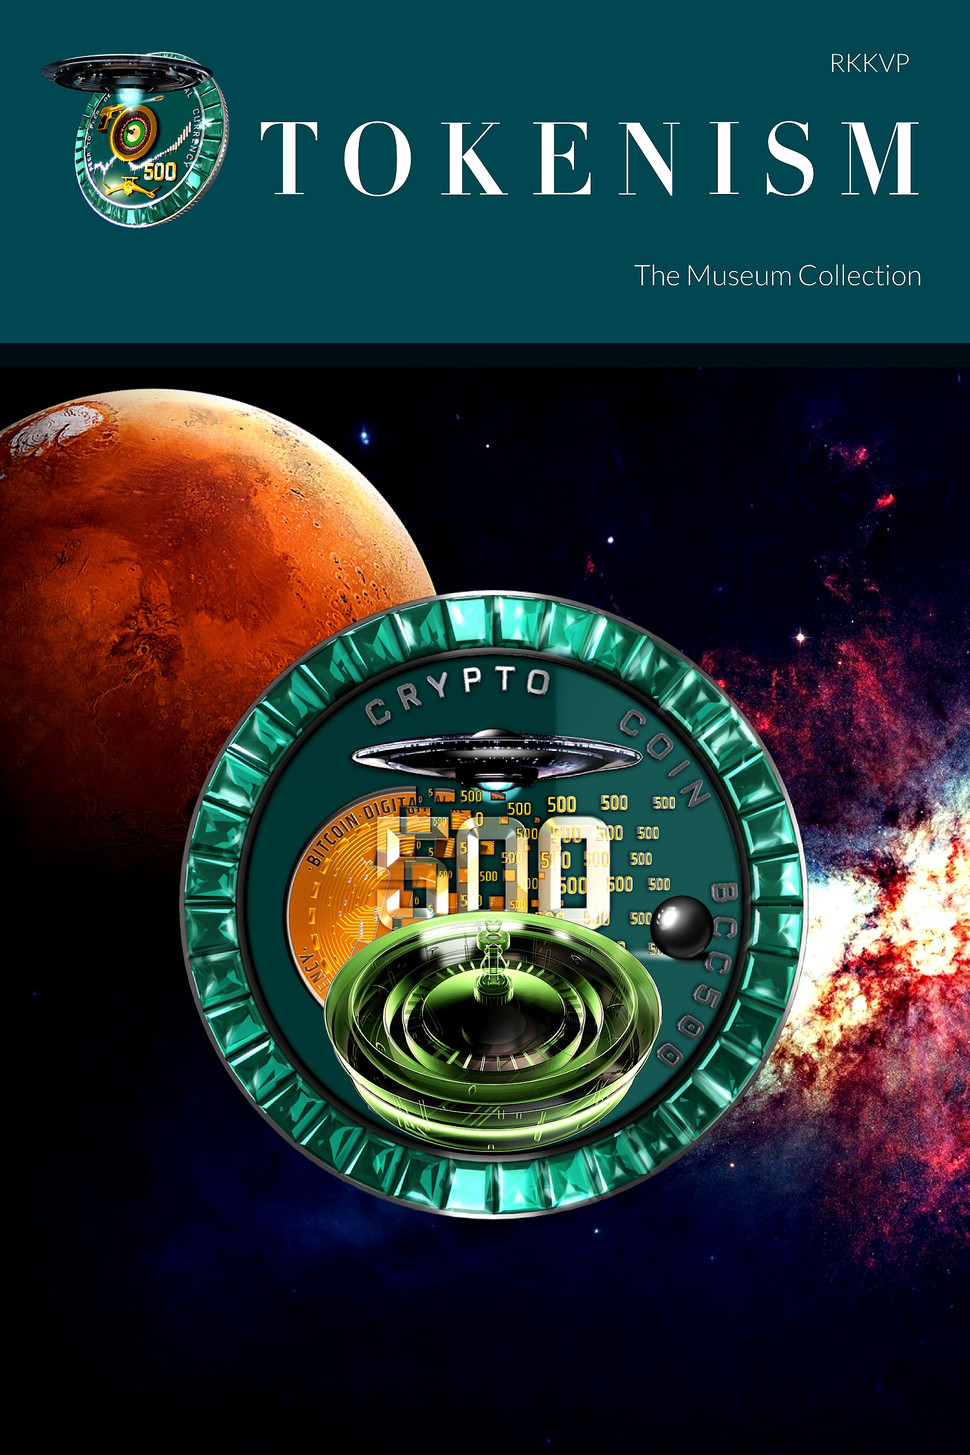 The Game of Games in Coin regulated environment has just begun. Go Mars and win Big